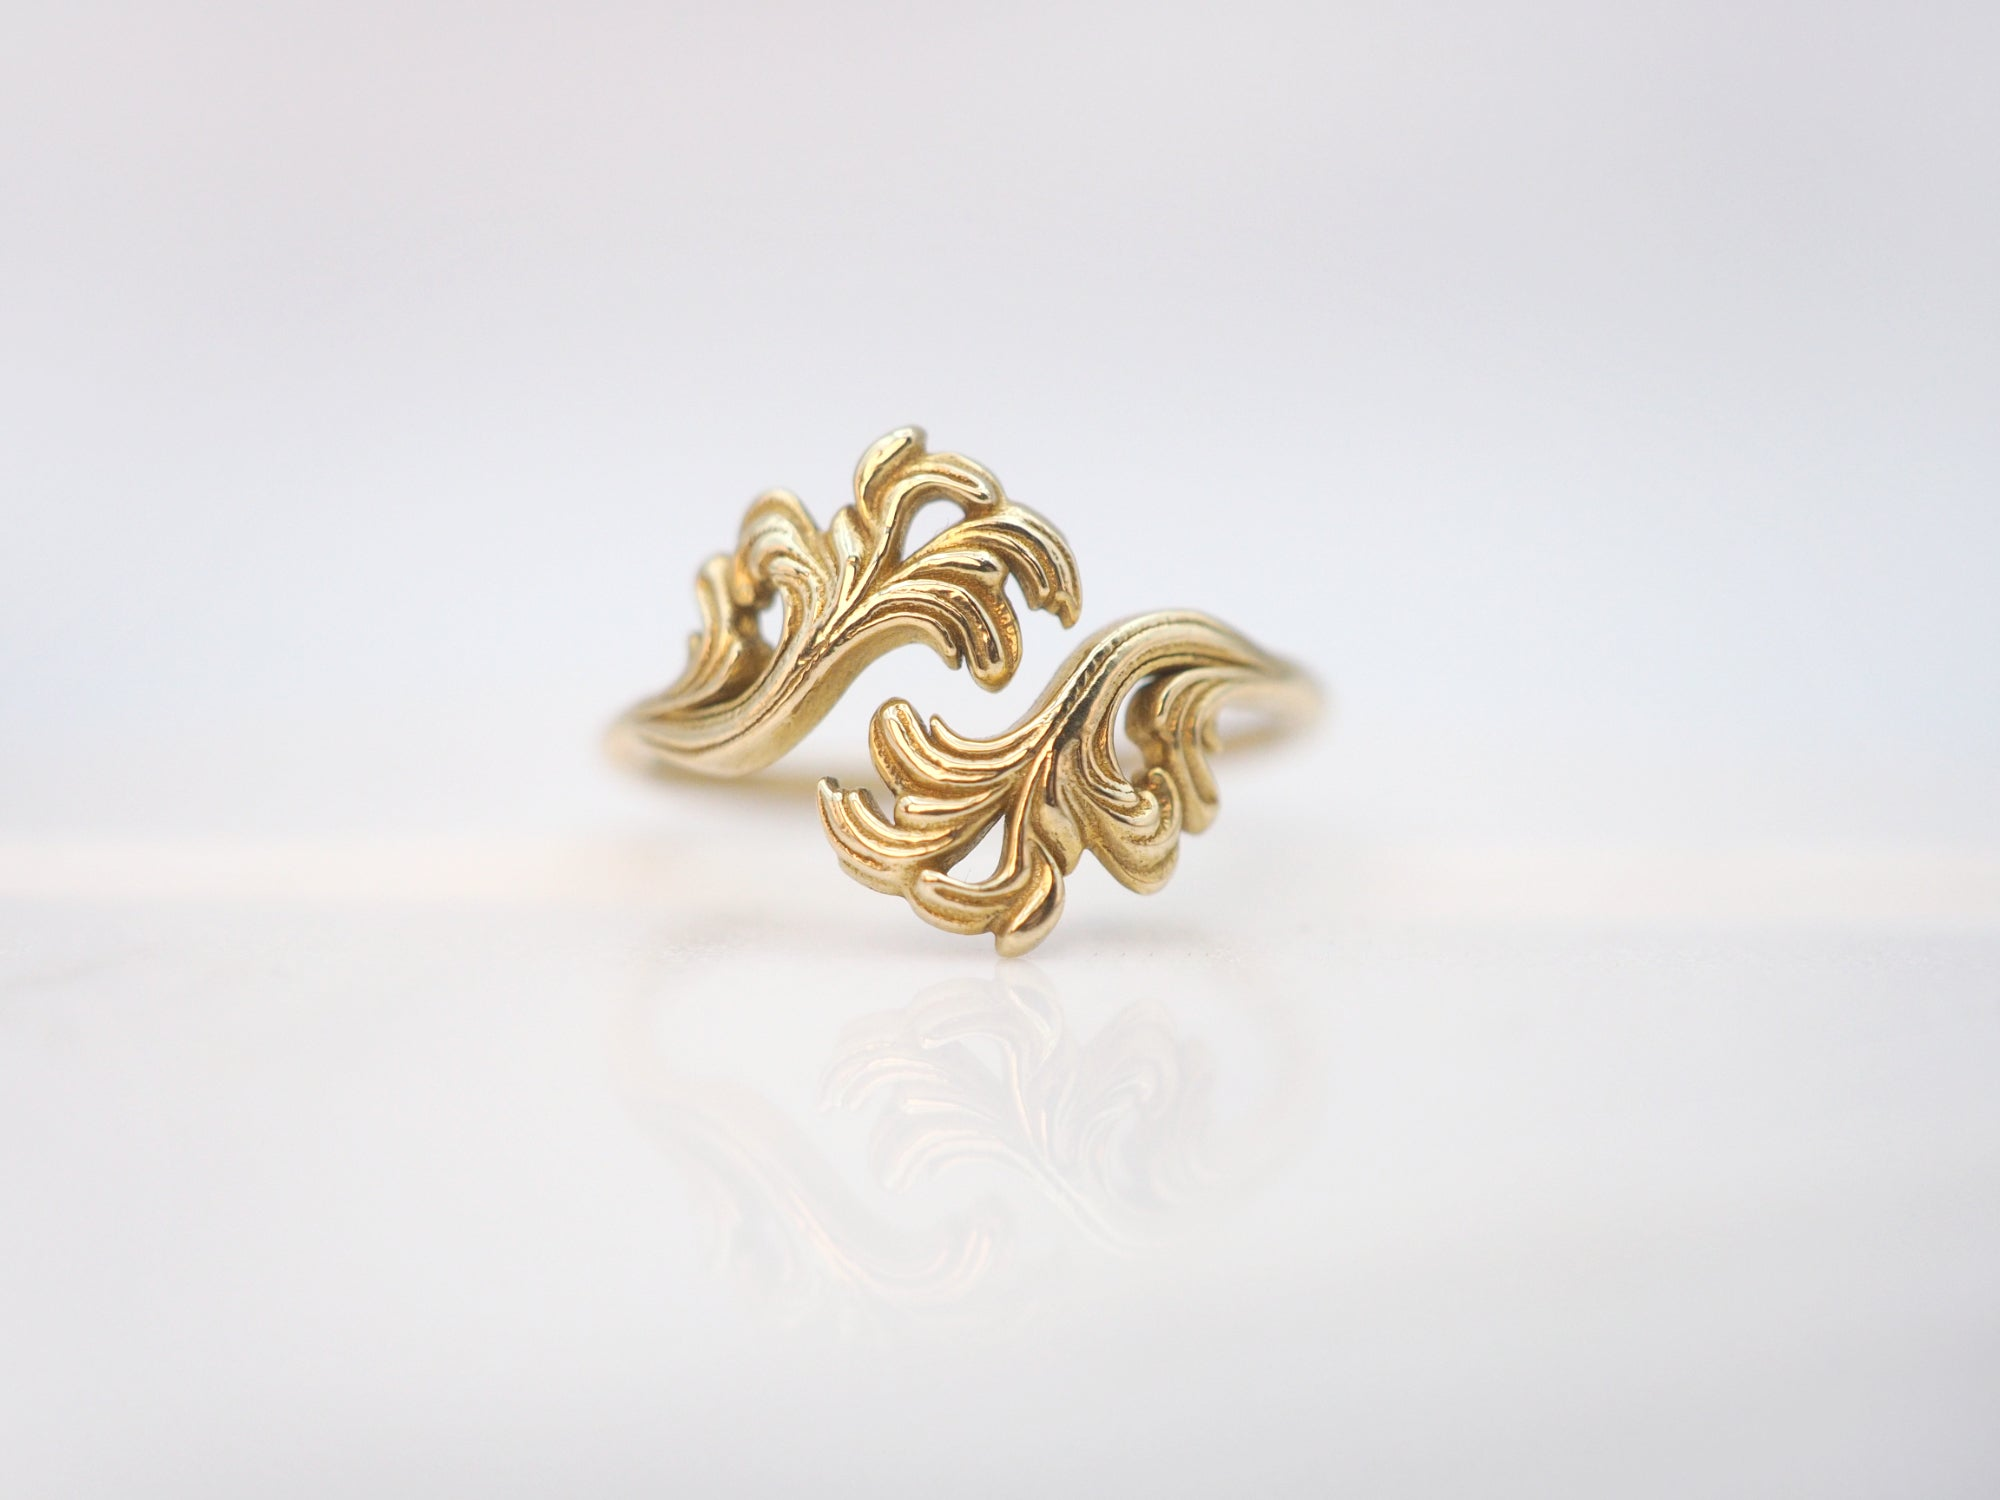 The Wisteria Statement Ring